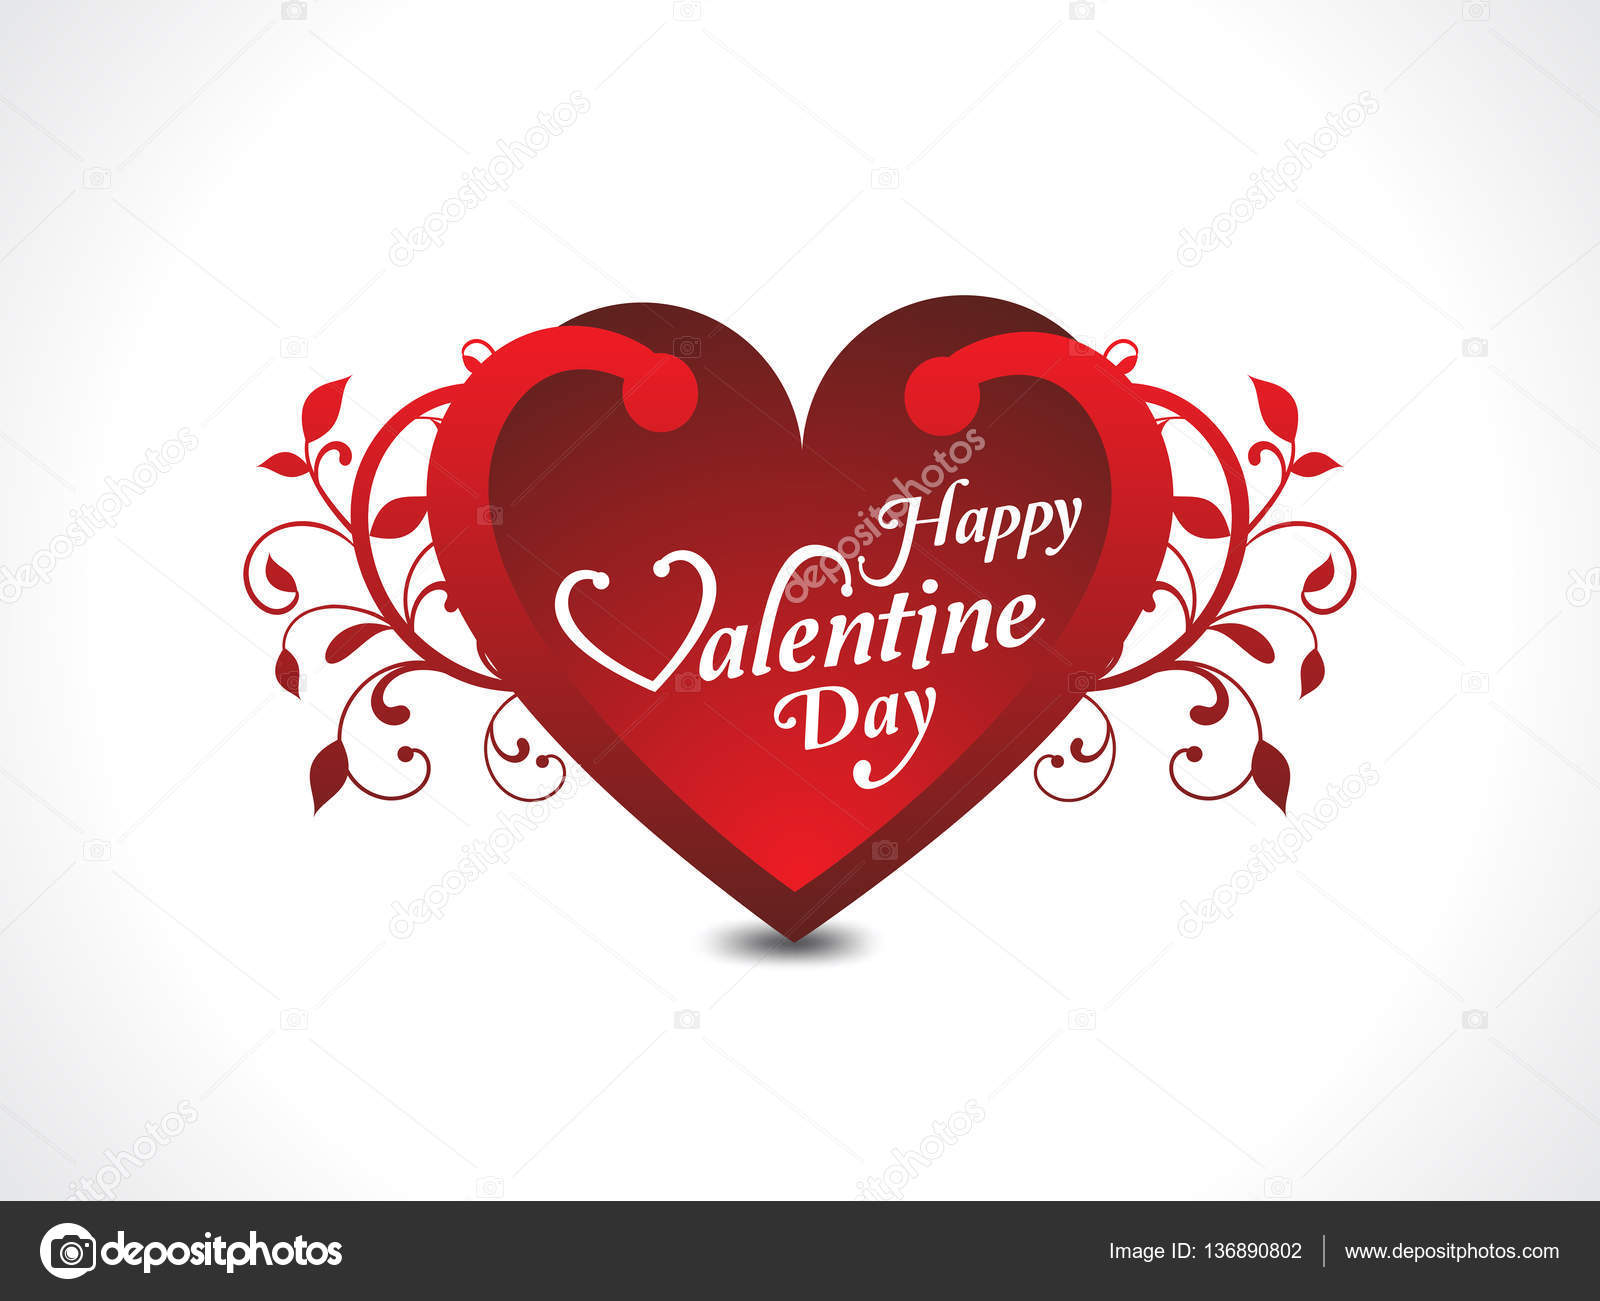 happy Valentines day text & Heart Shape Design Template Wtih flo ...